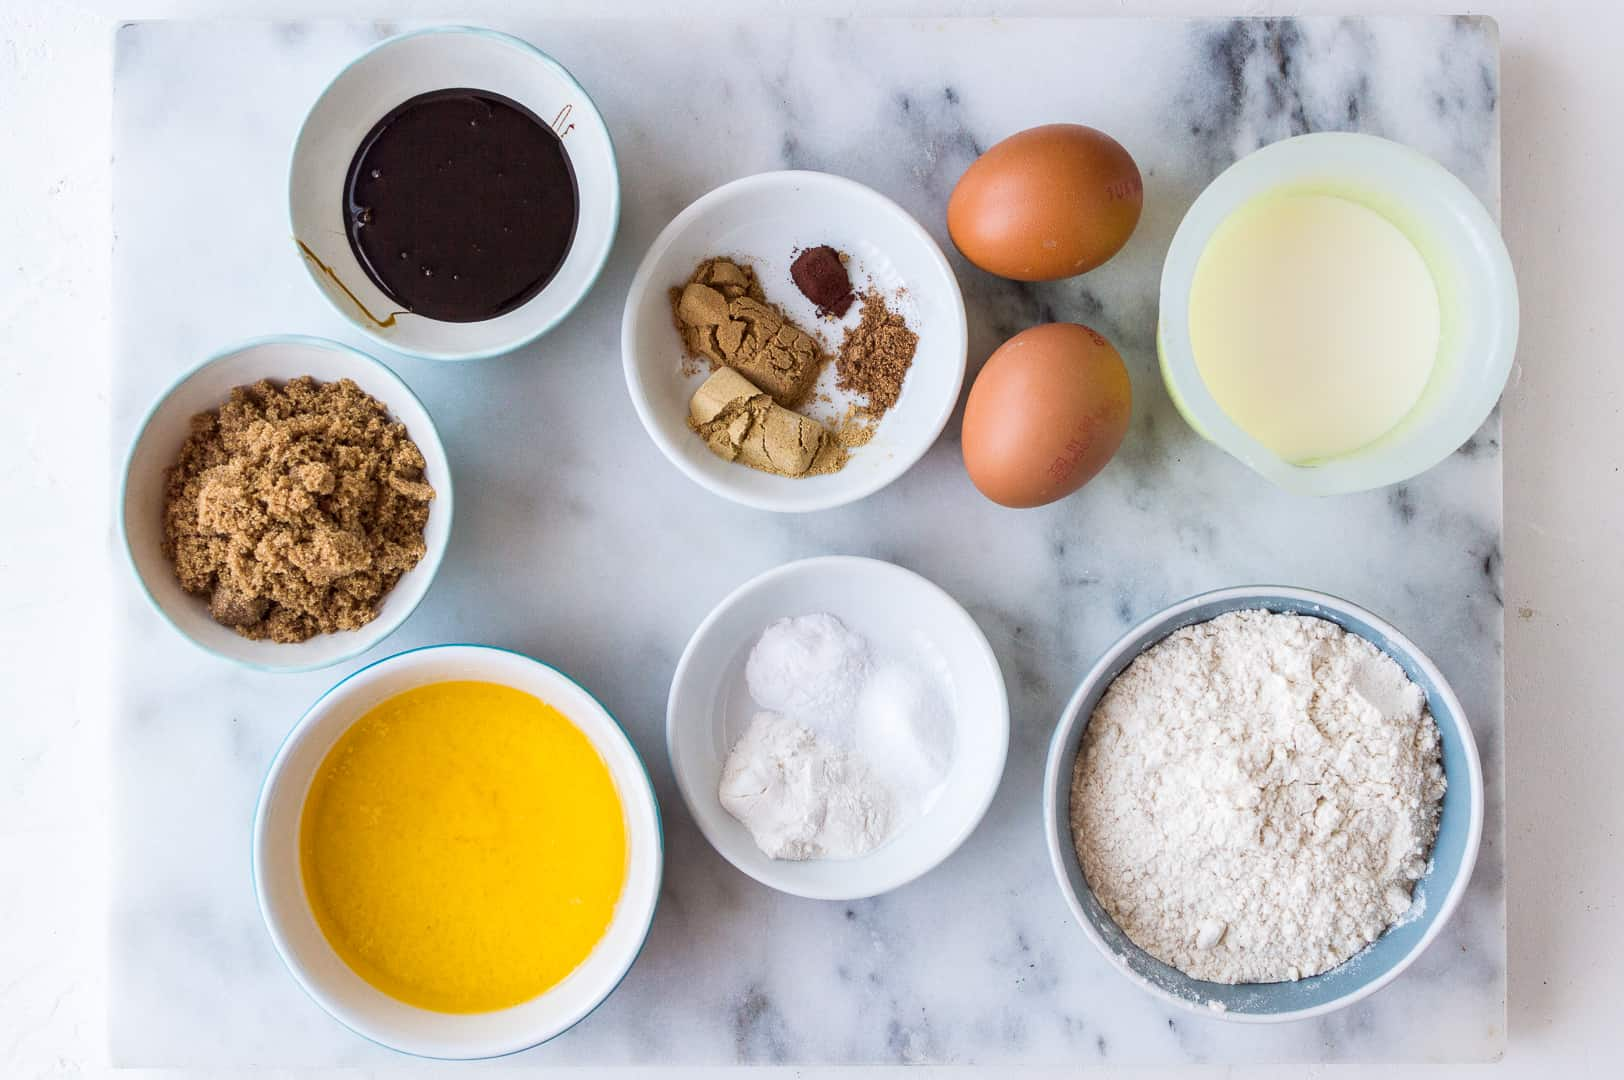 Gingerbread pancake ingredients